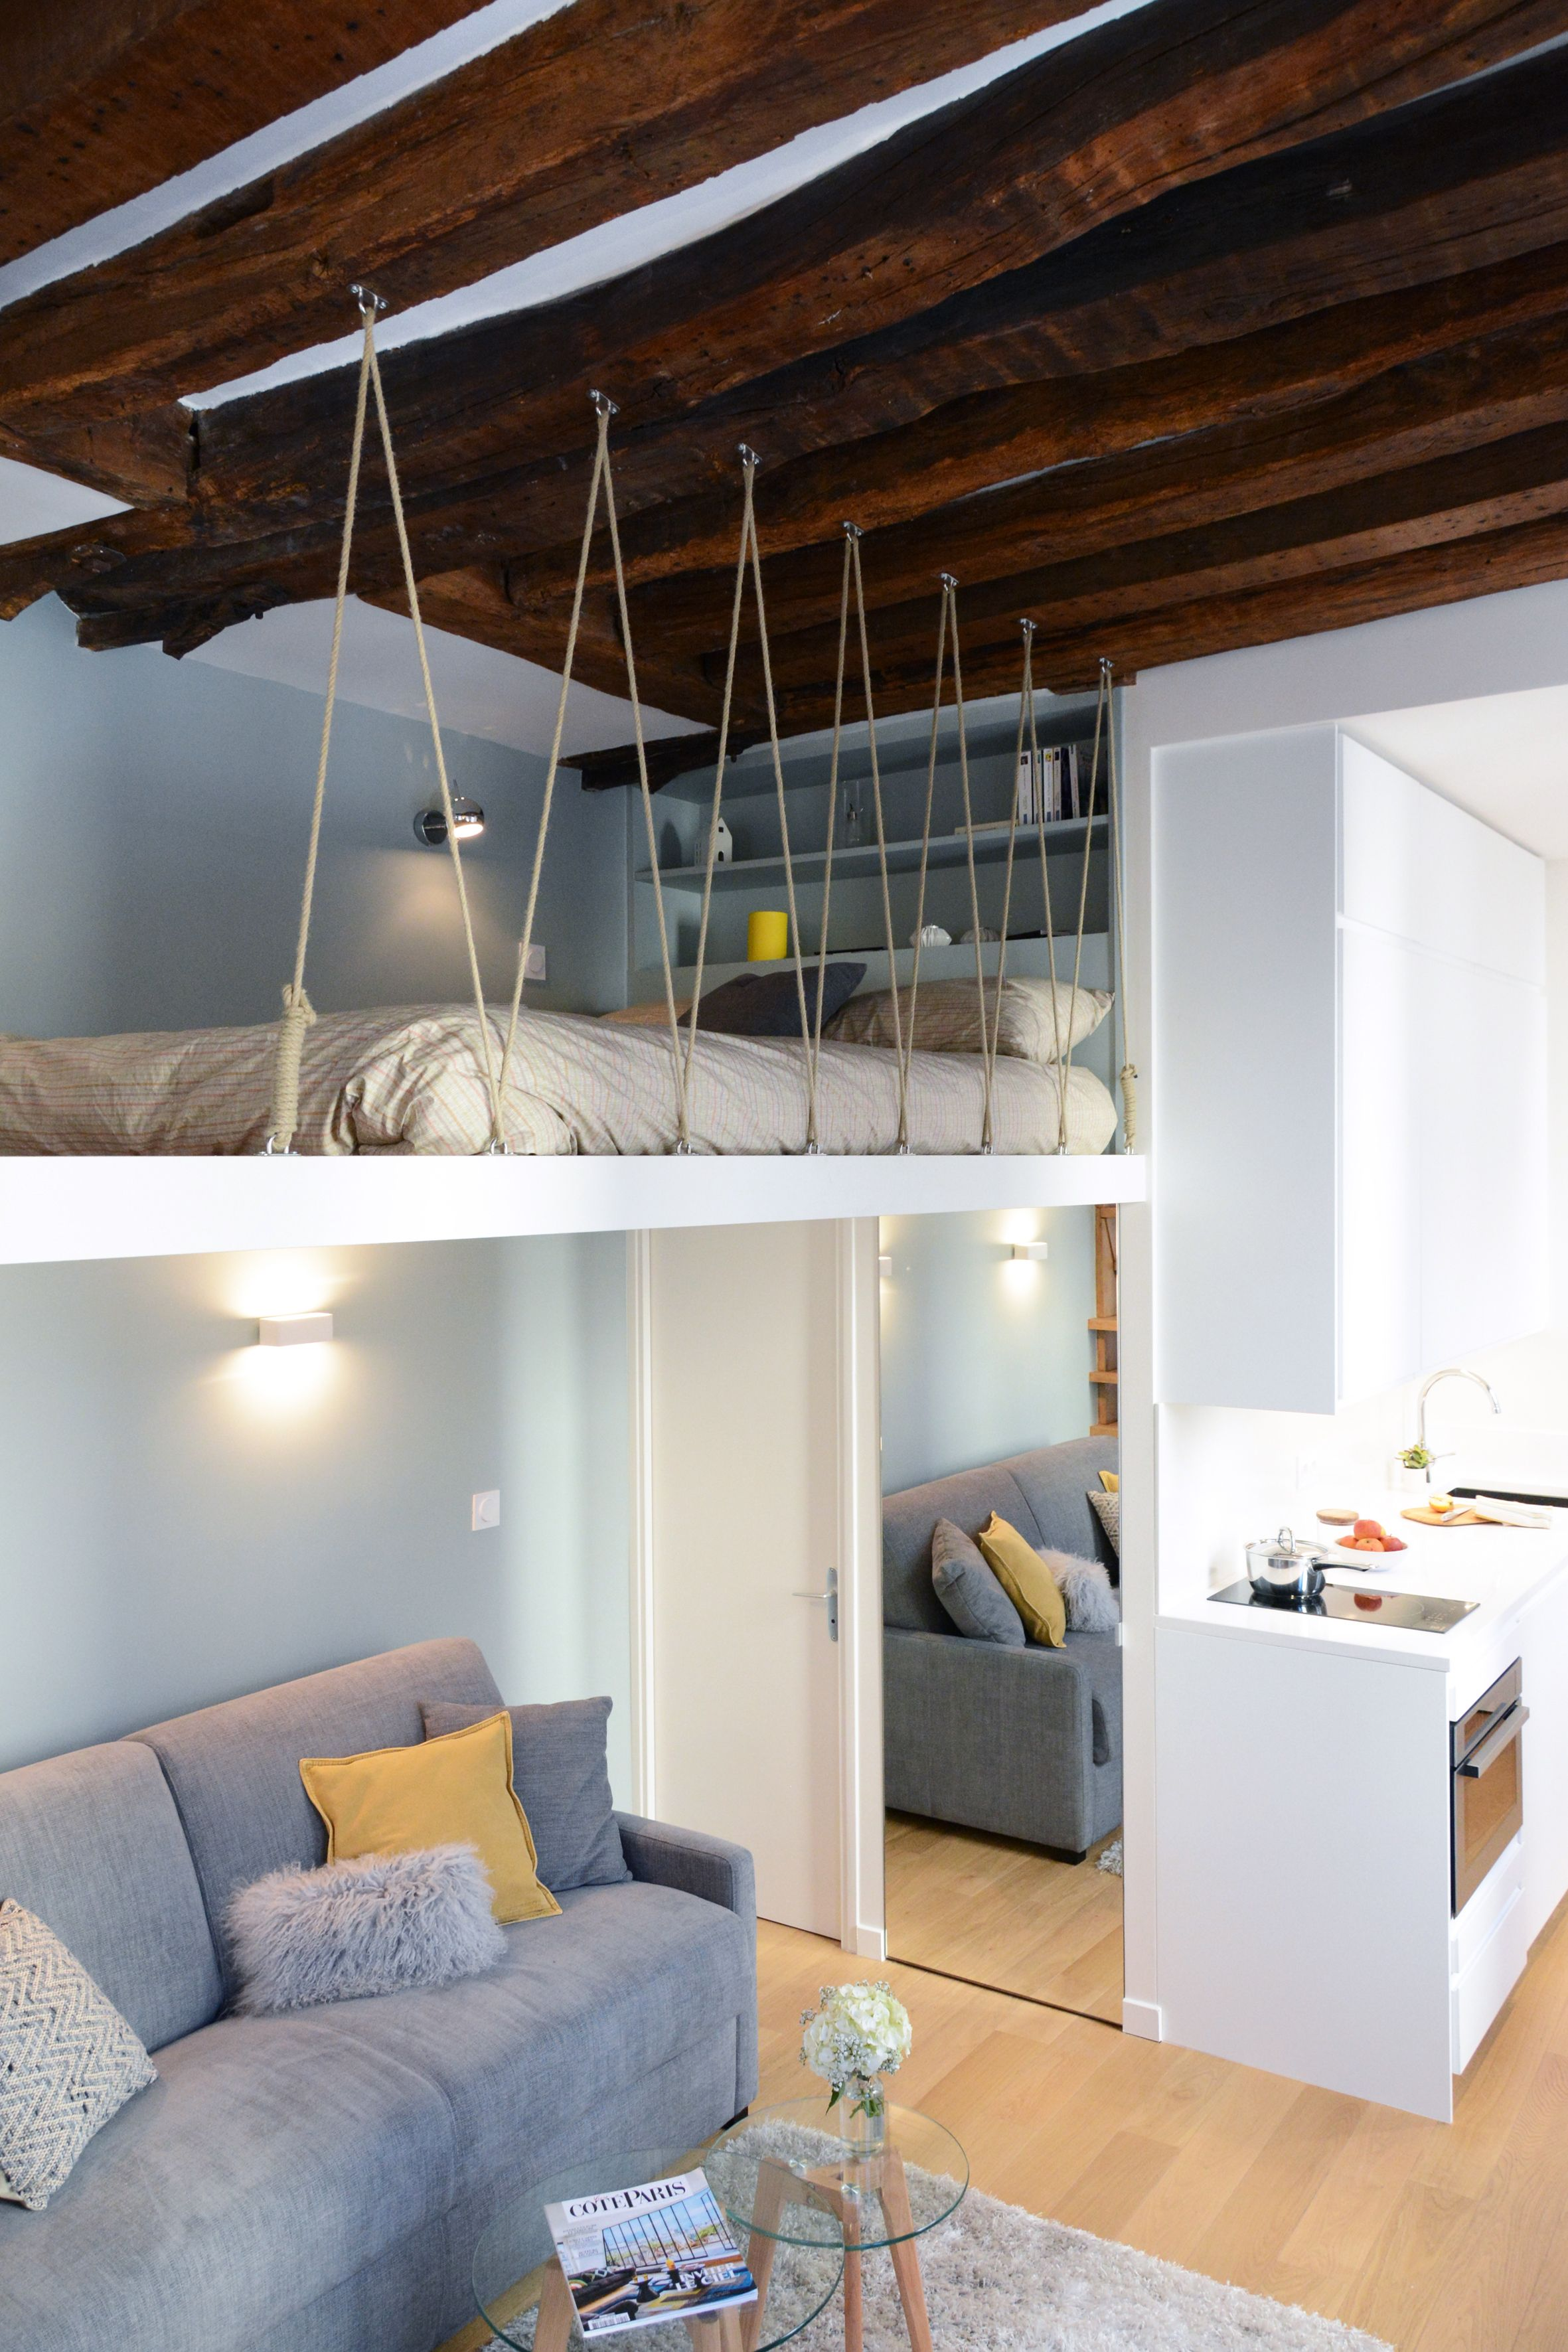 studio avec mezzanine Paris | house en 2019 | Mezzanine bedroom ...